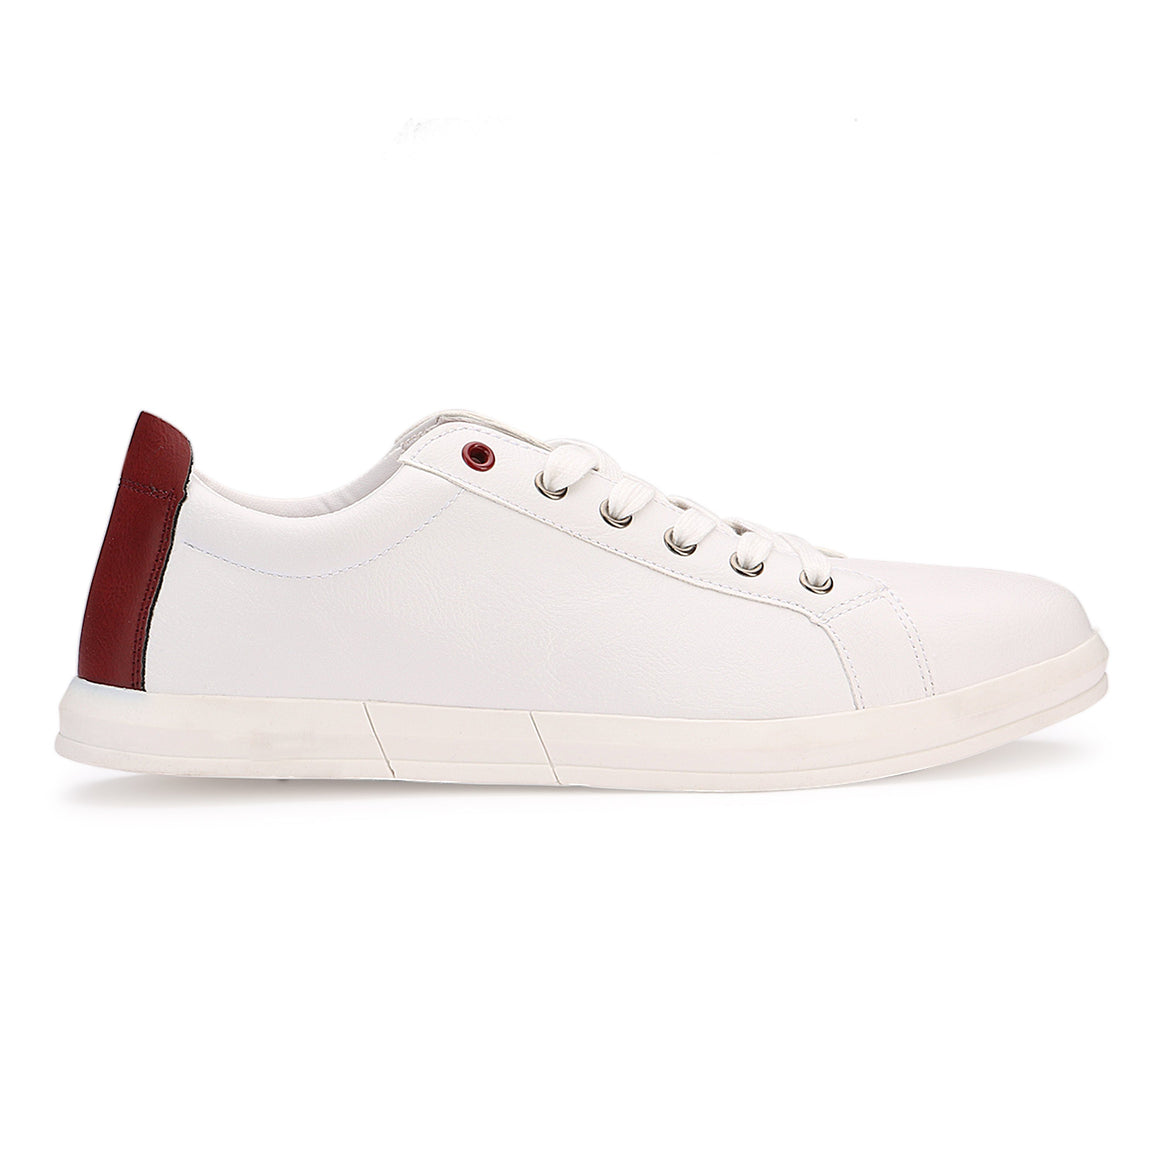 Xray Men's The Pokalde Casual Lowtop Sneakers BURGUNDY